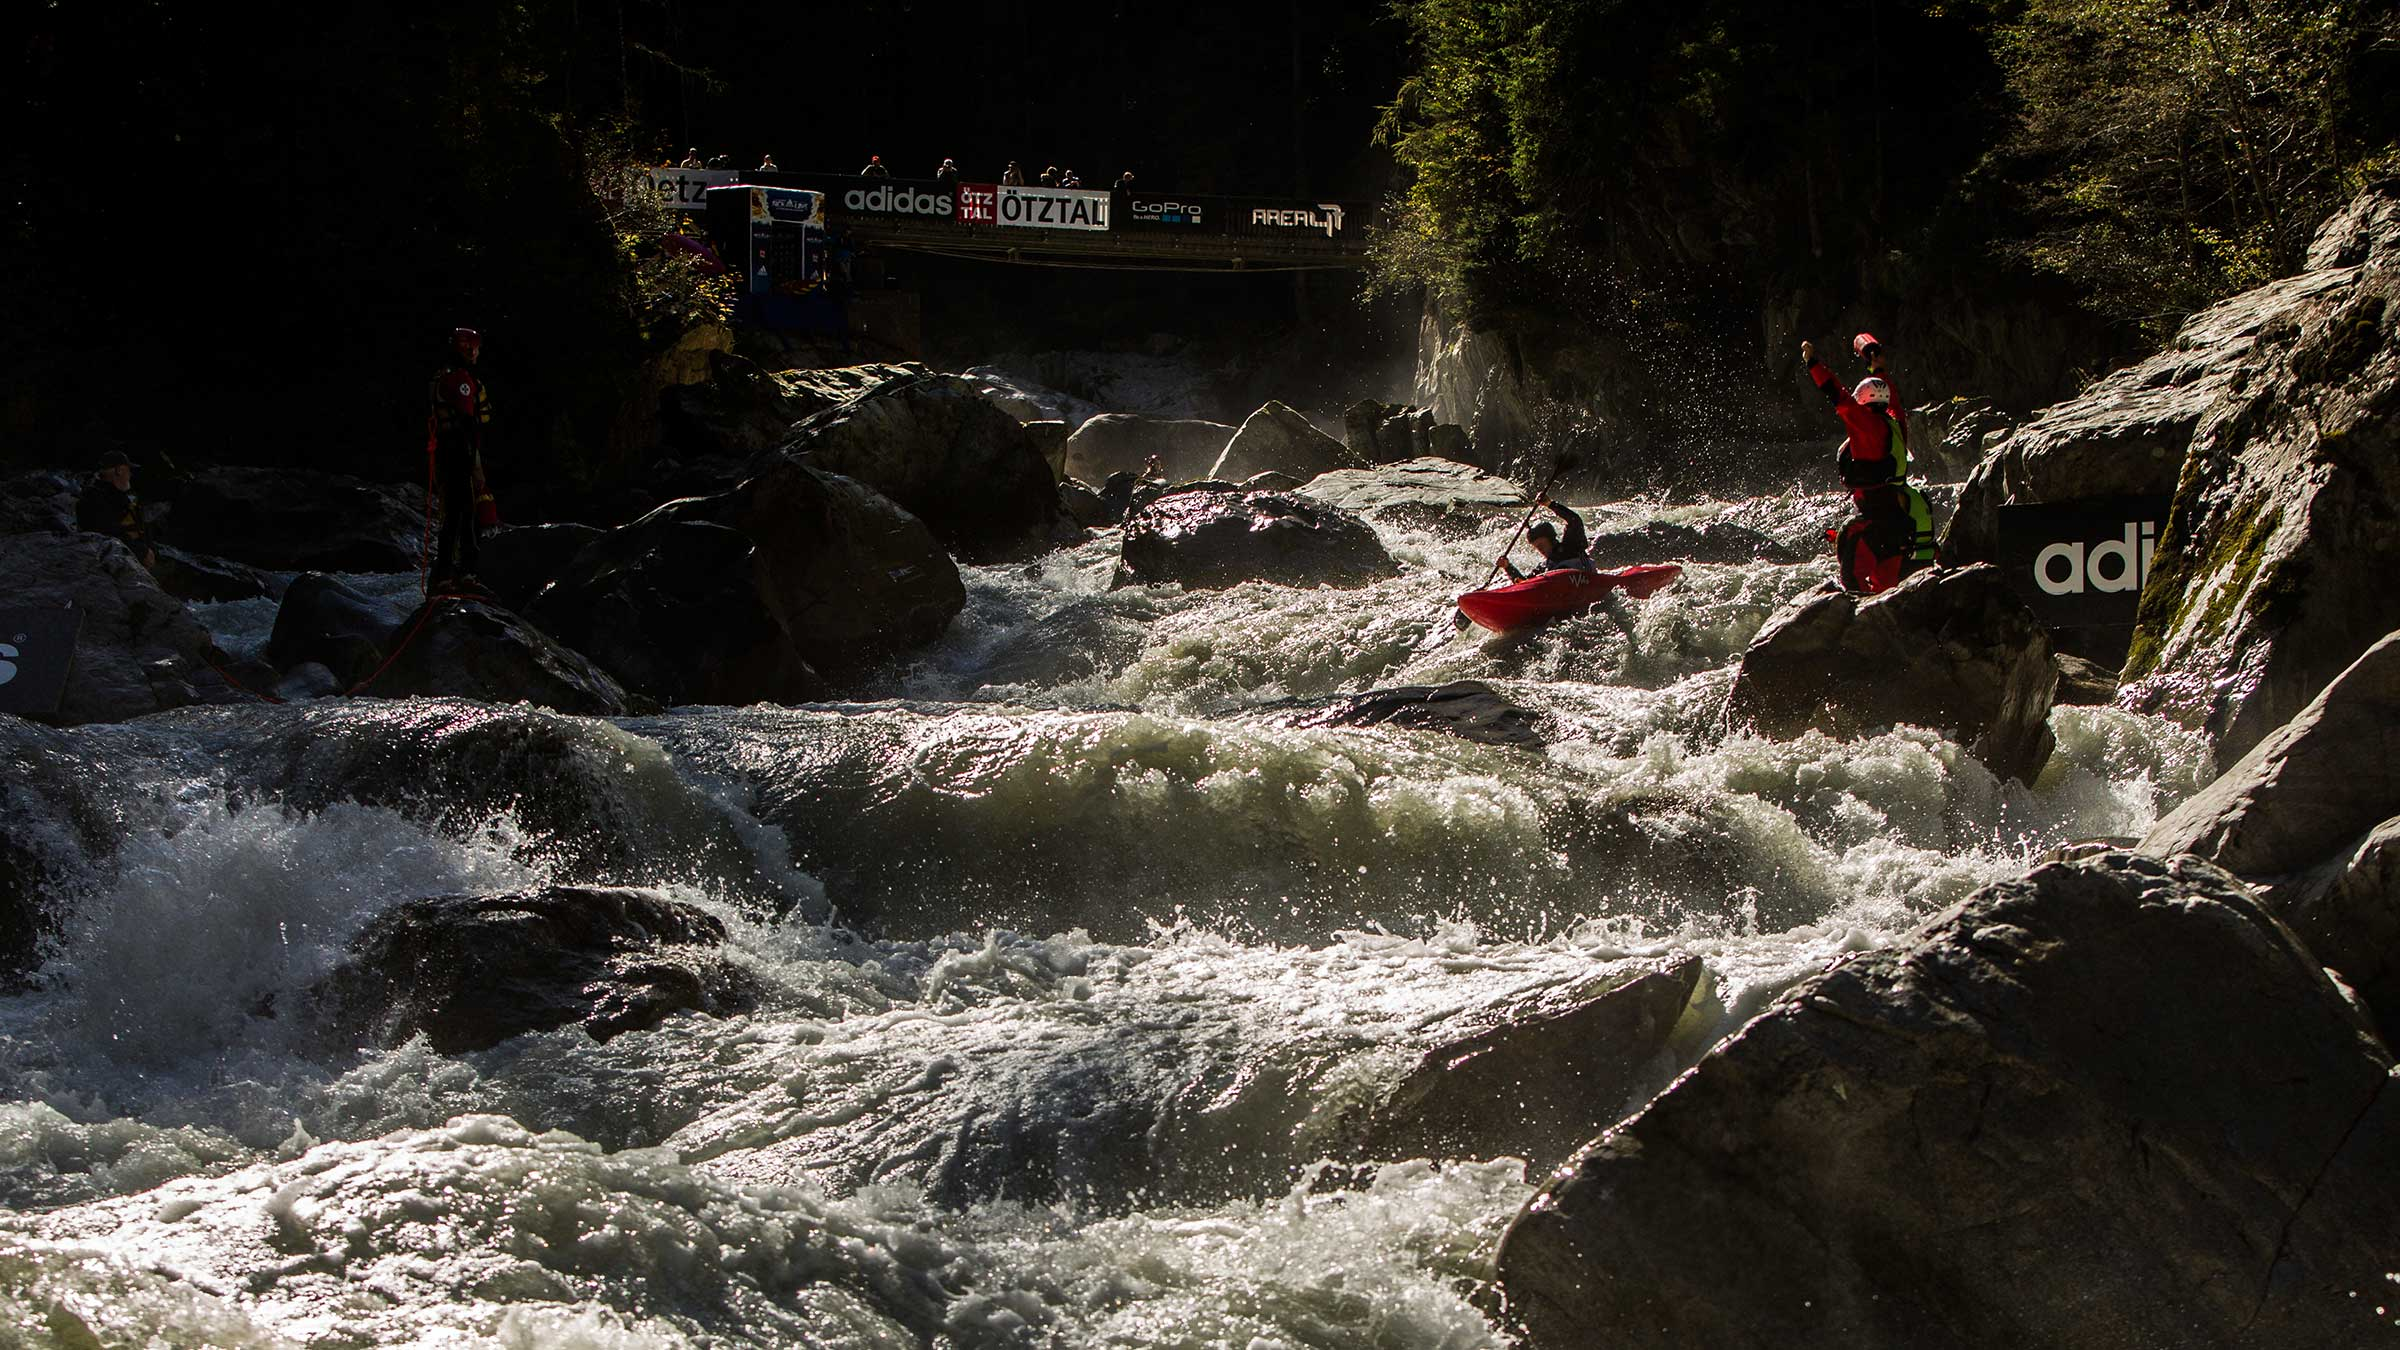 The World's Best Whitewater Kayakers descend on the Ötztal